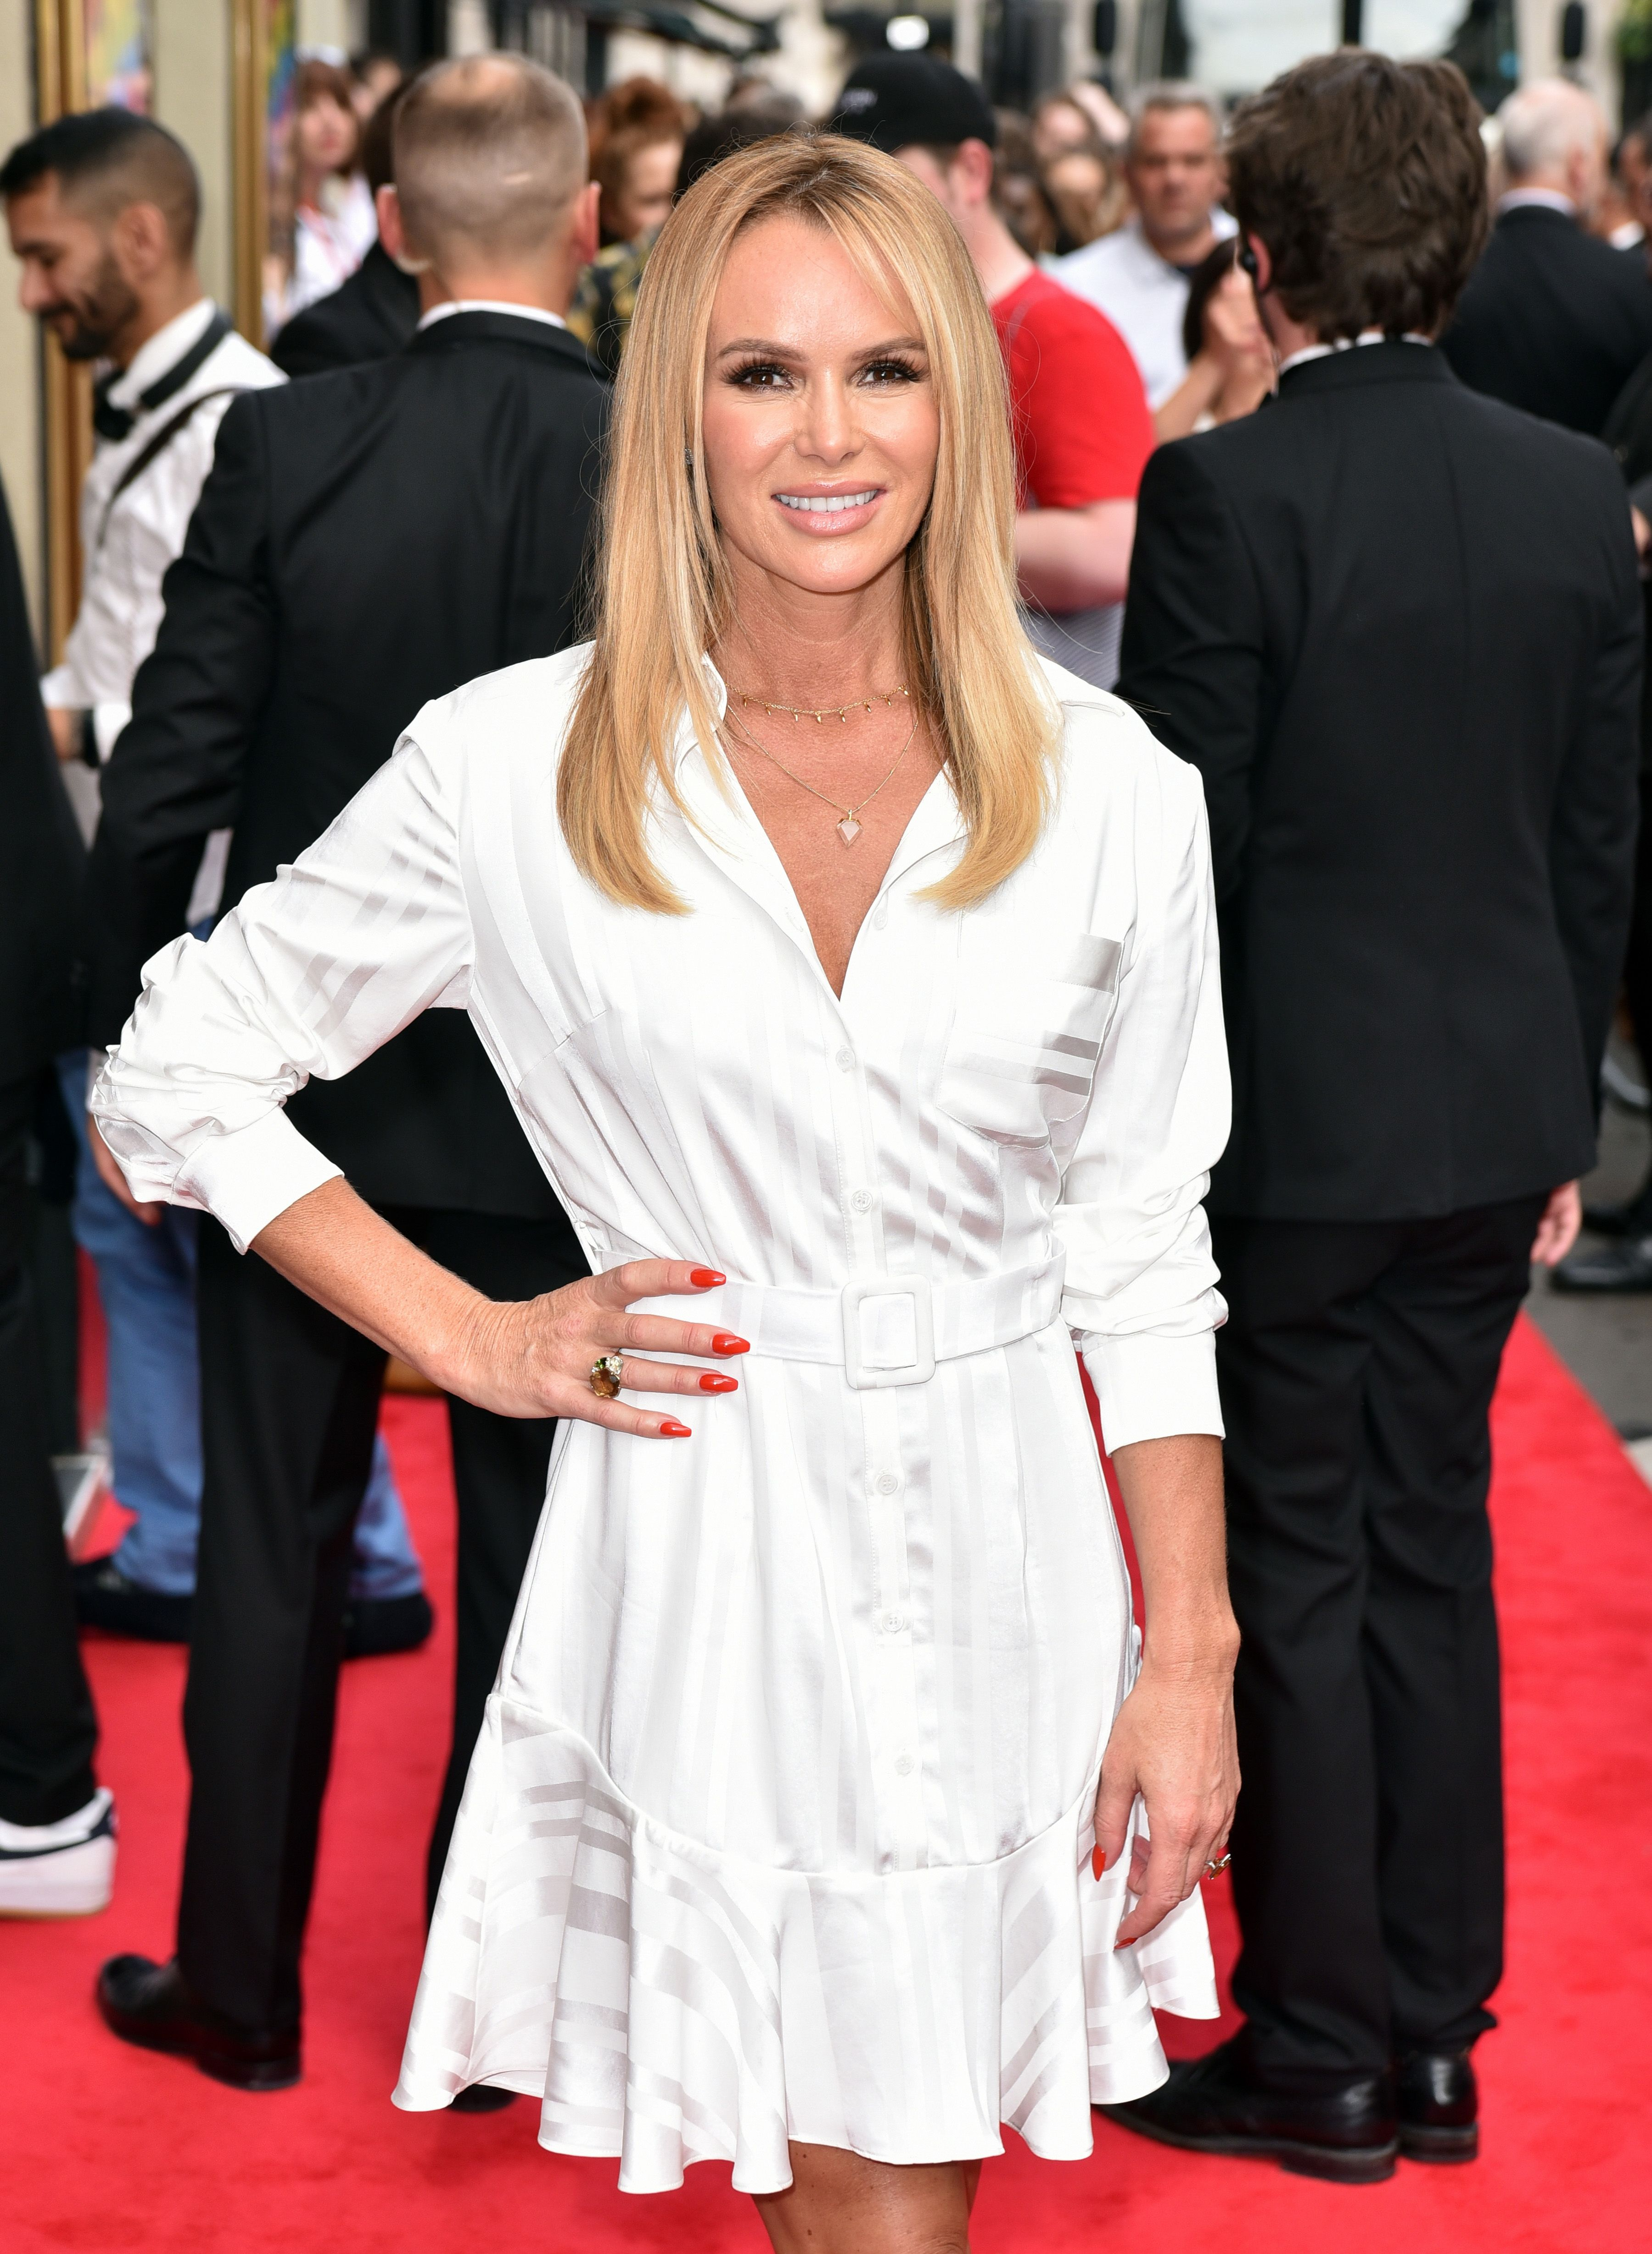 Amanda Holden has picked the perfect sale dress for late summer weddings